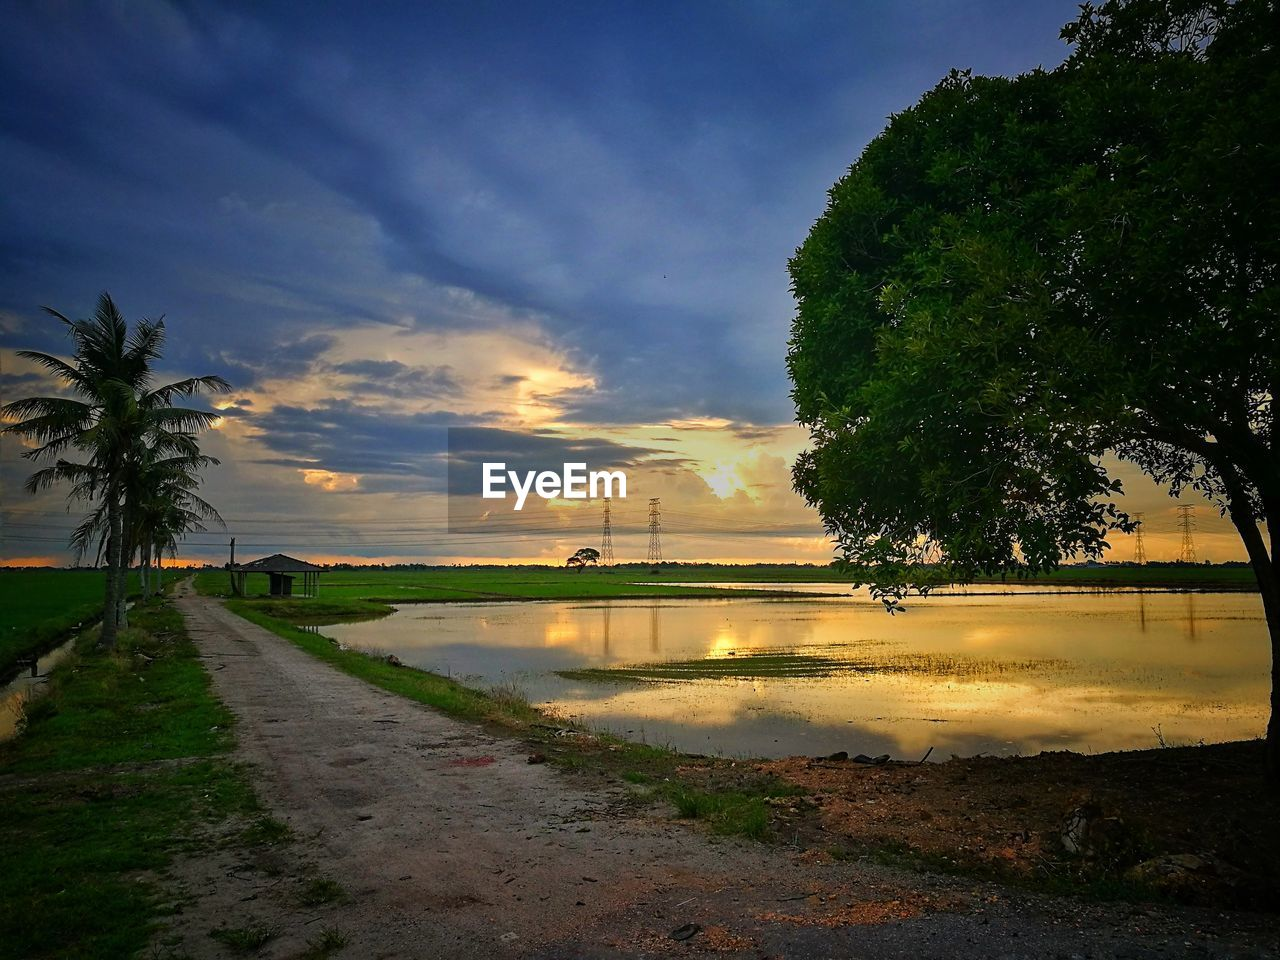 sunset, tree, sky, nature, beauty in nature, water, cloud - sky, reflection, scenics, growth, outdoors, no people, built structure, architecture, day